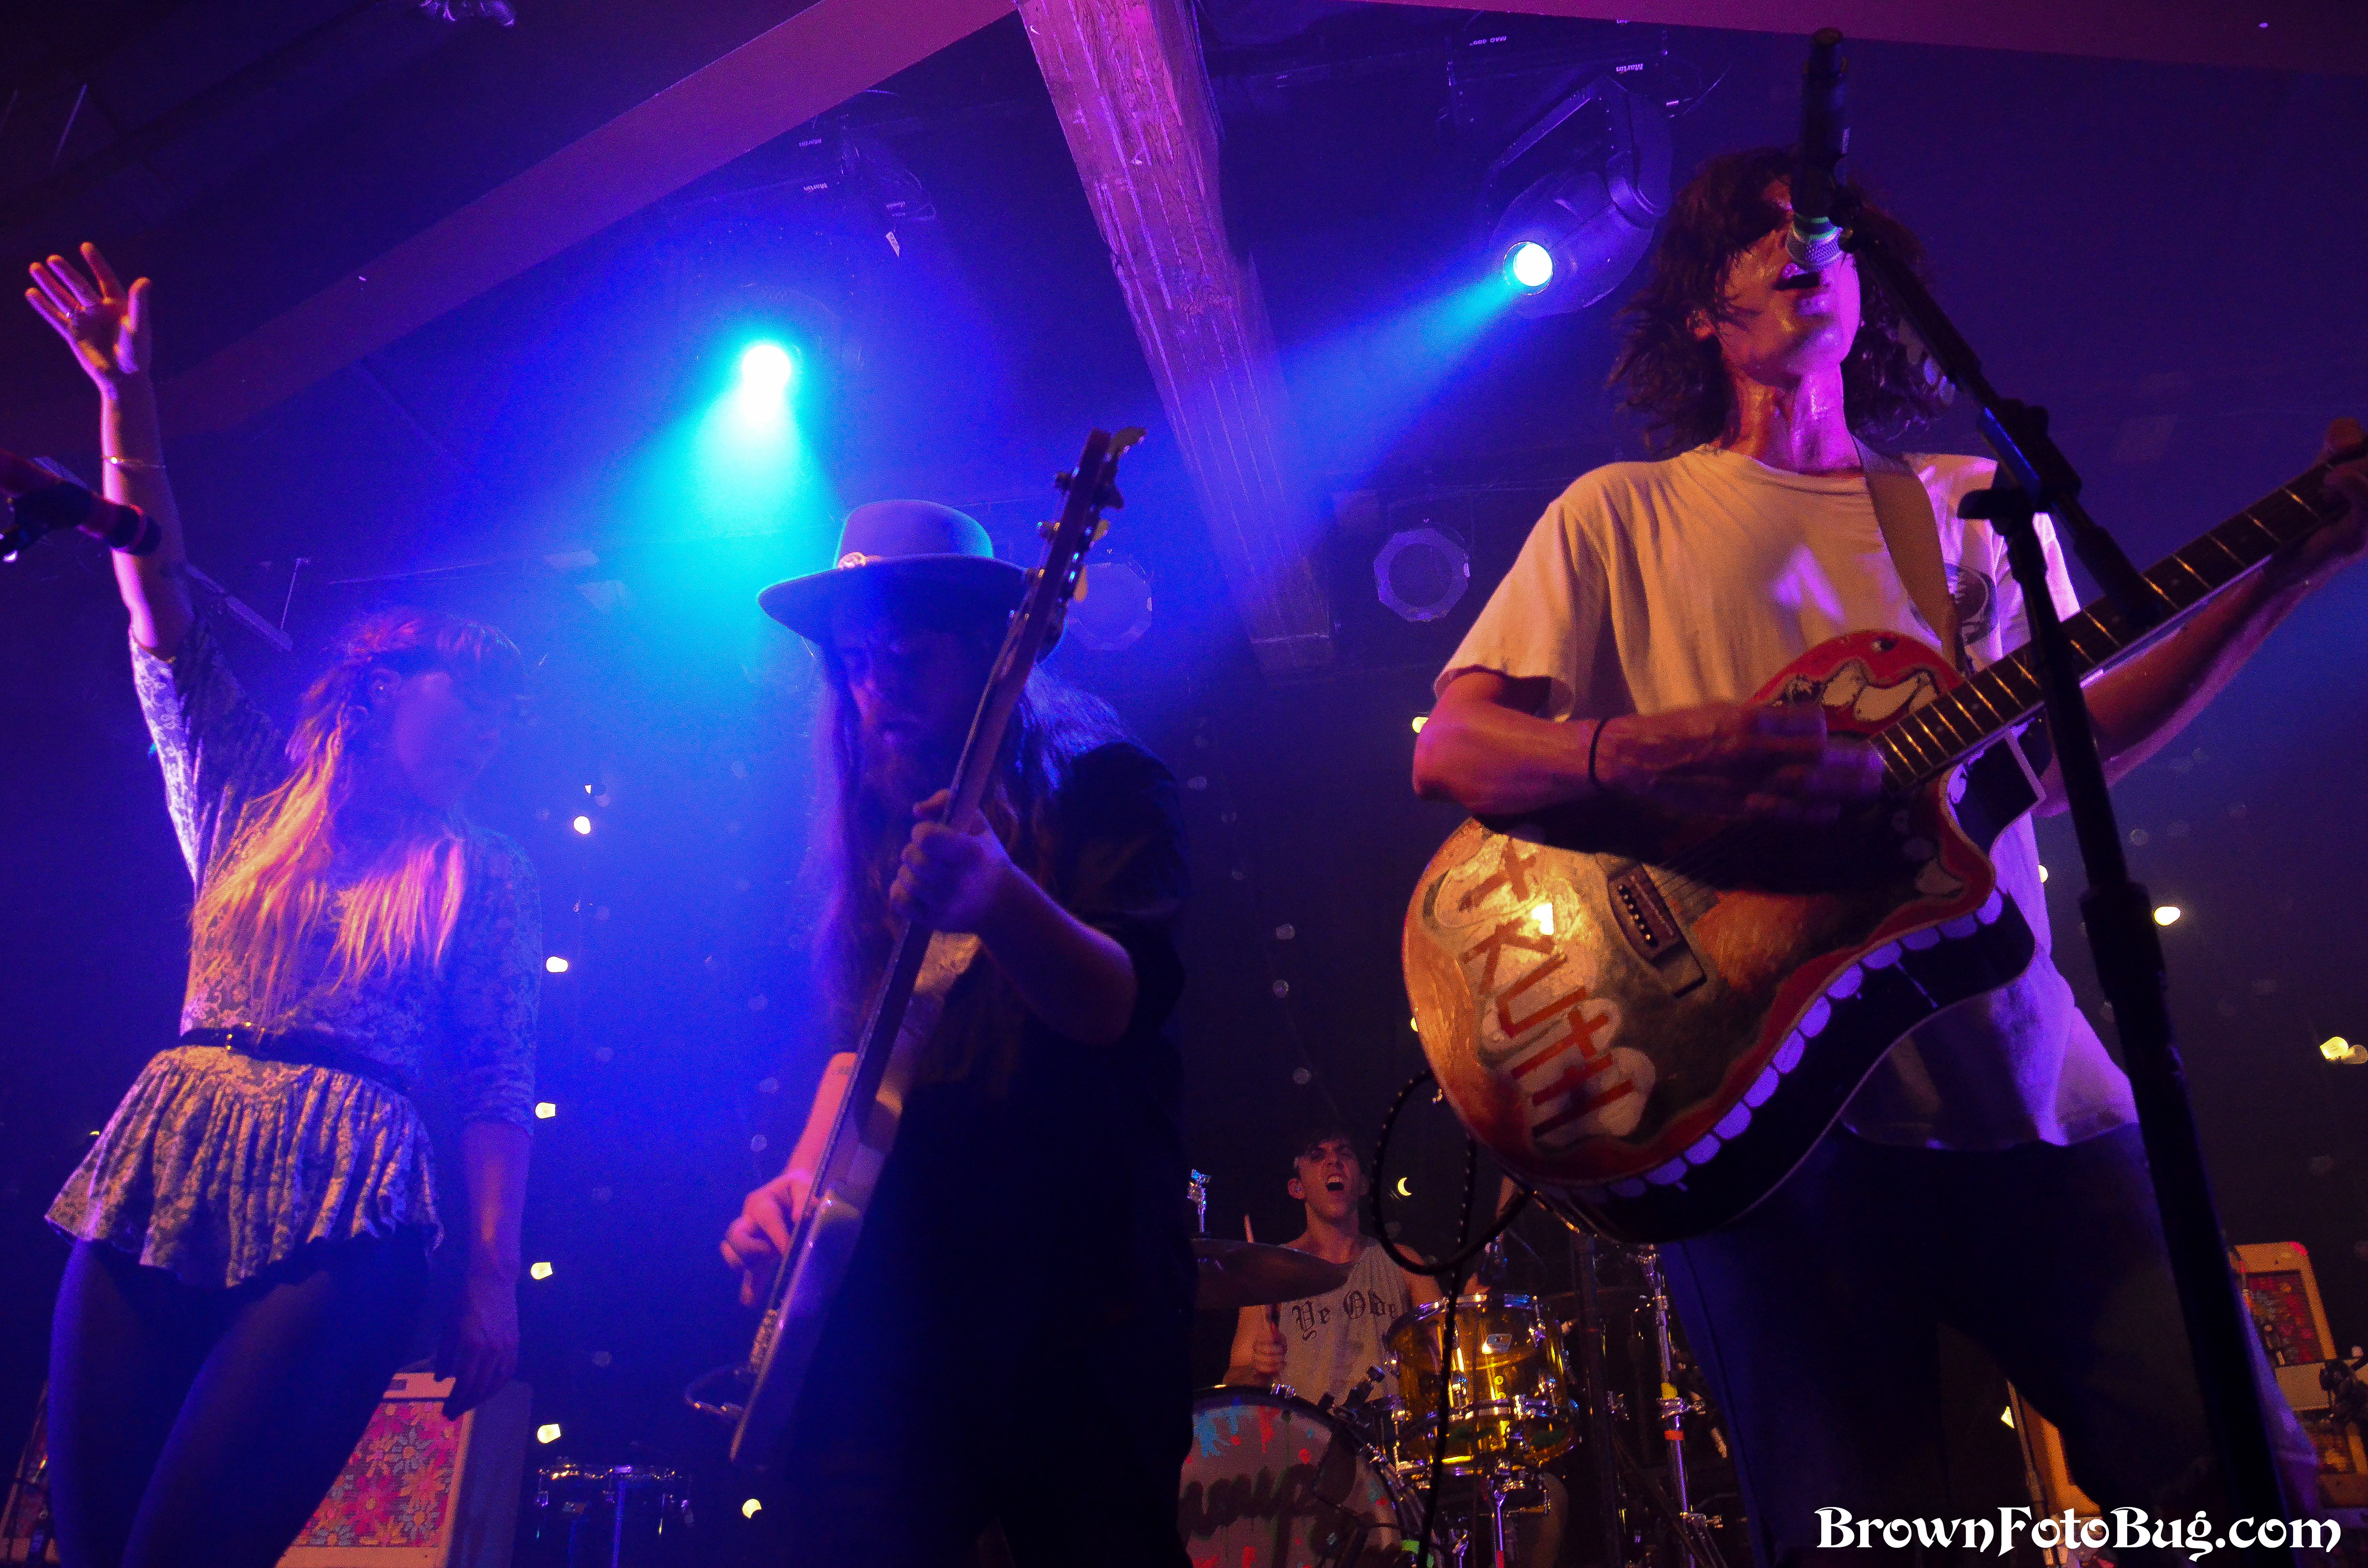 Grouplove Live @ The Crocodile 9/9/13 (Photo by Arlene Brown)